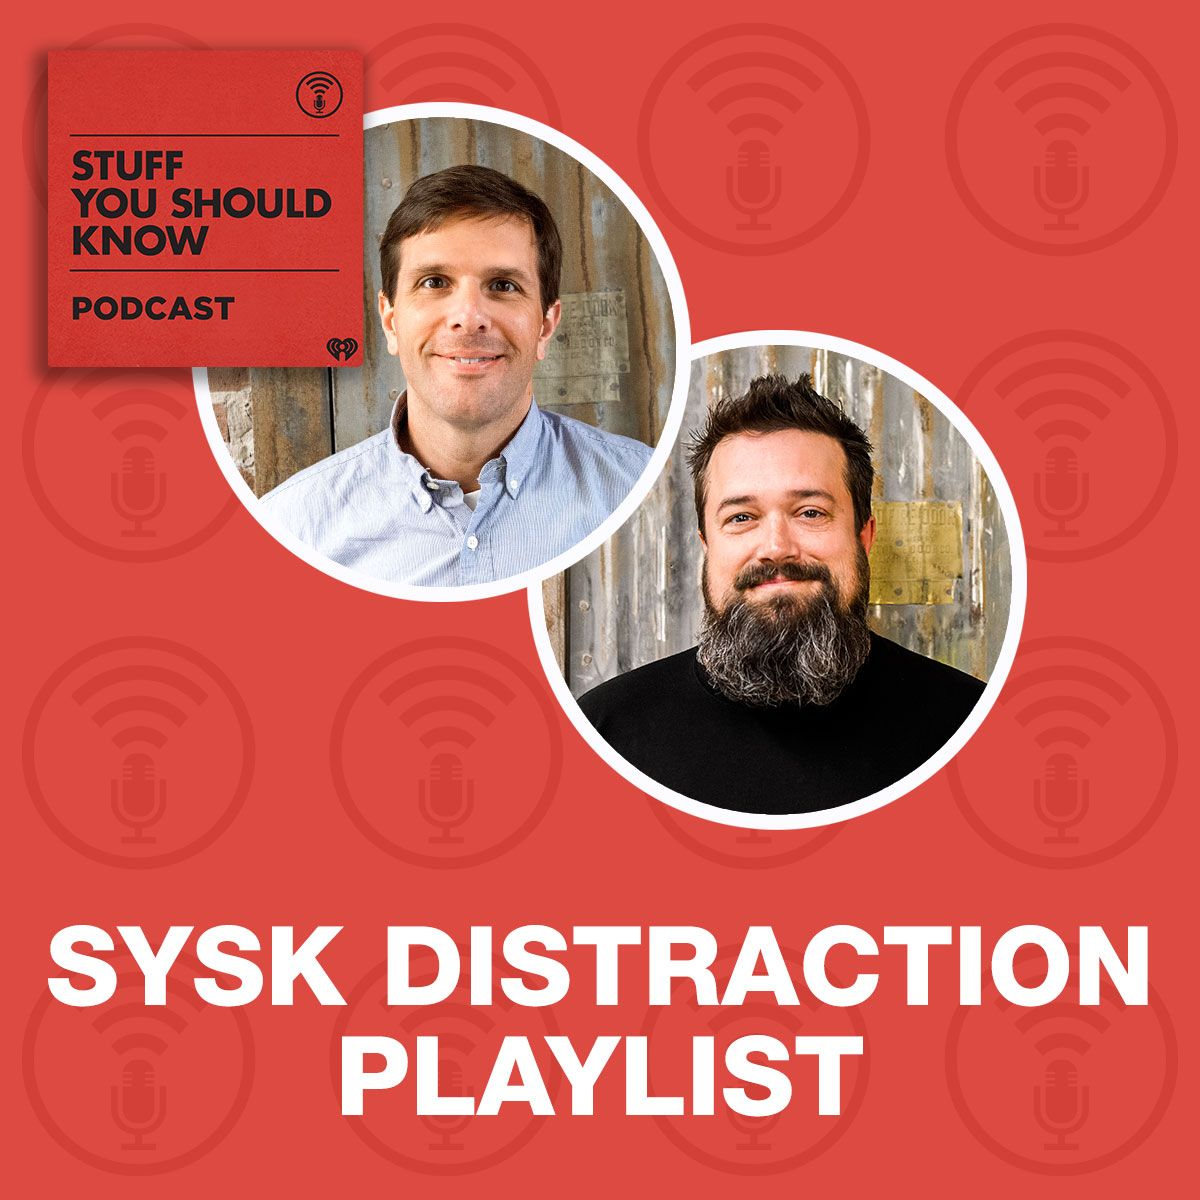 SYSK Distraction Playlist: How Pinball Works